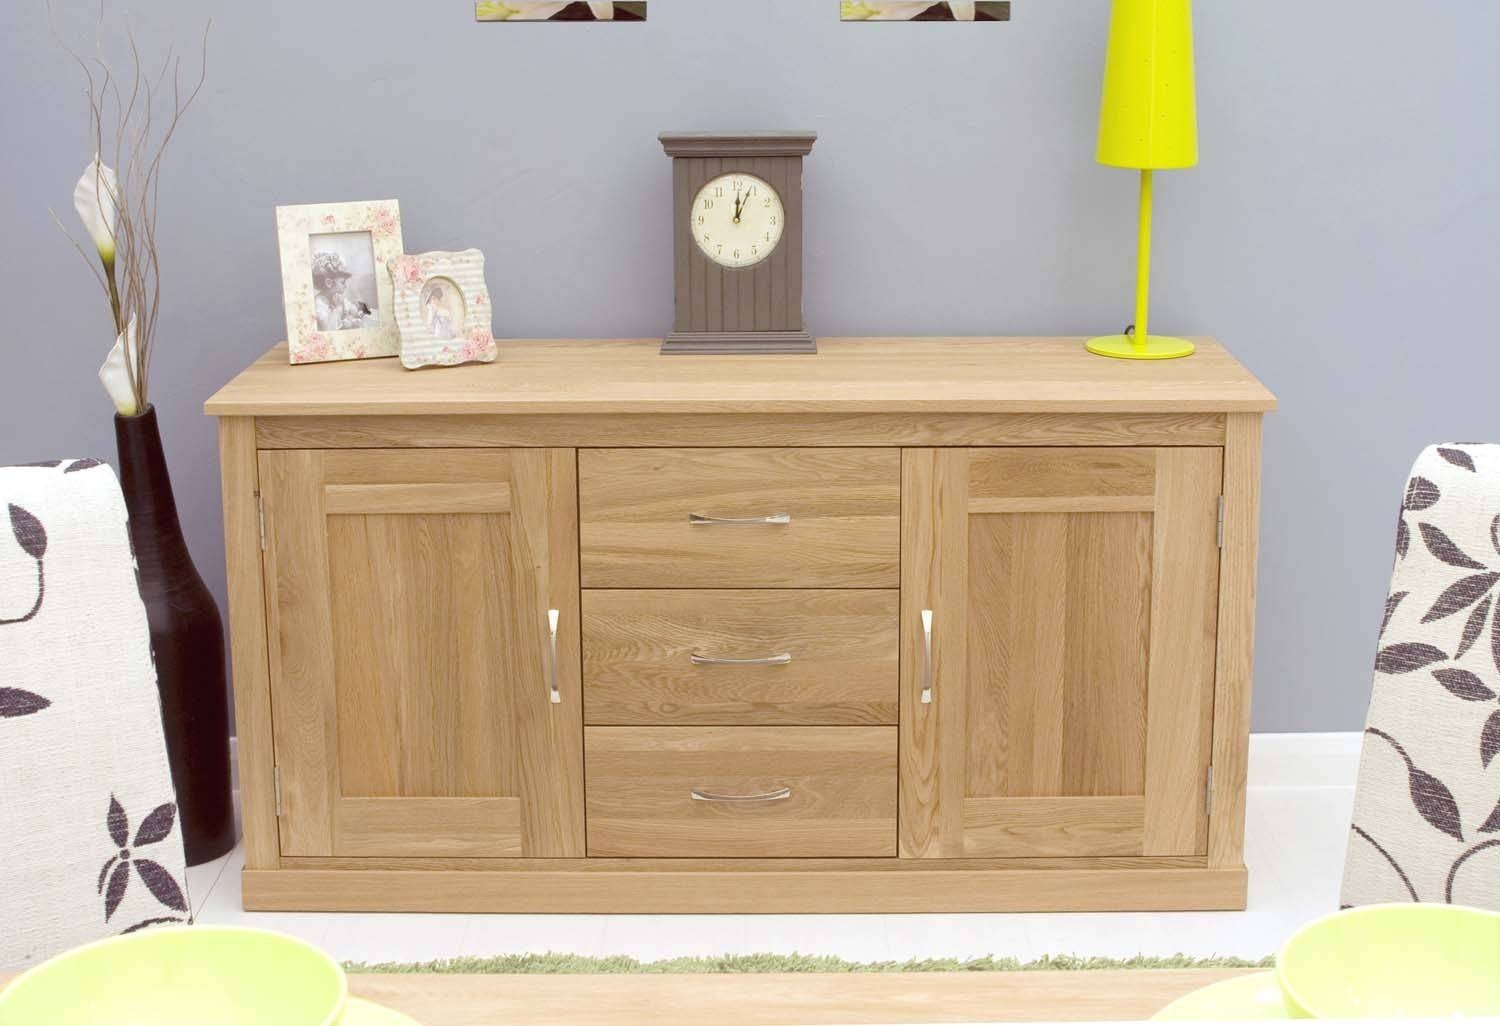 Modern Light Oak Sideboards And Console Table | Solid Oak inside Contemporary Oak Sideboards (Image 13 of 30)